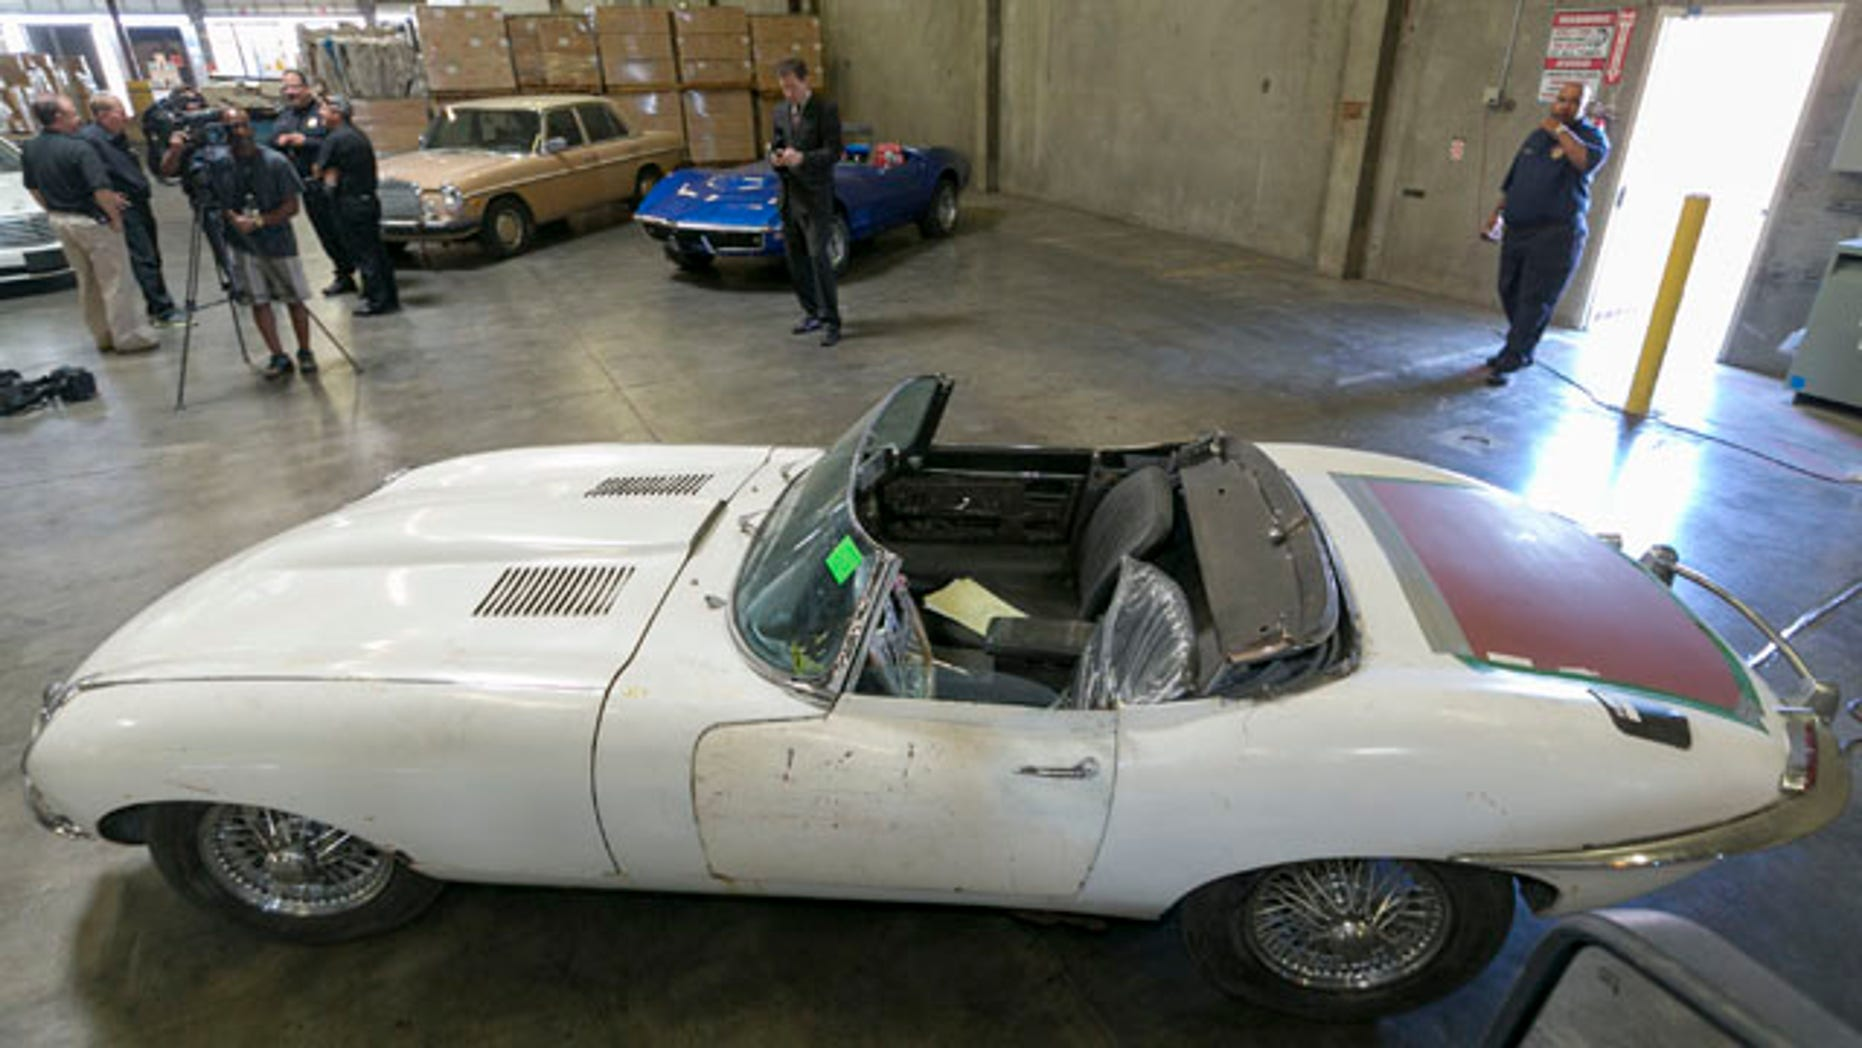 September 17, 2014: A 1967 Jaguar XK-E convertible that was stolen 46 years ago is shown to the media by the U.S. Customs and Protection agency in Carson, Calif. The car was recovered at the Port of Long Beach by the California Highway Patrol along with four other cars in a container en route to the Netherlands. (AP Photo/Damian Dovarganes)